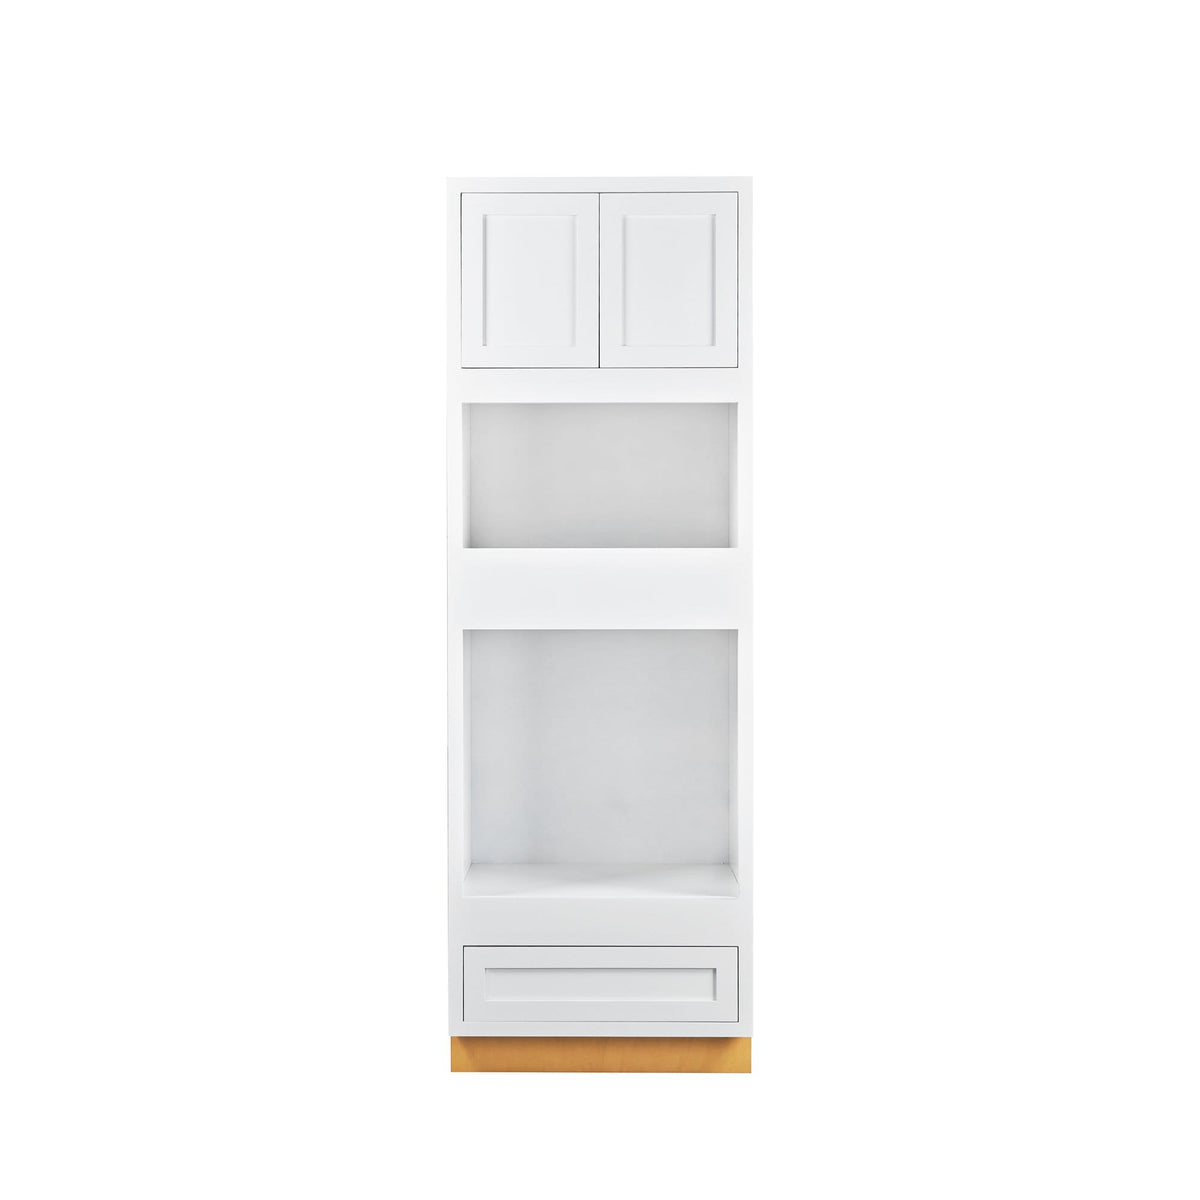 "Wall Oven Cabinet Wall Oven Snow White Inset Shaker Cabinet 31"" Wide D1OC3193 Inset Kitchen Cabinets"